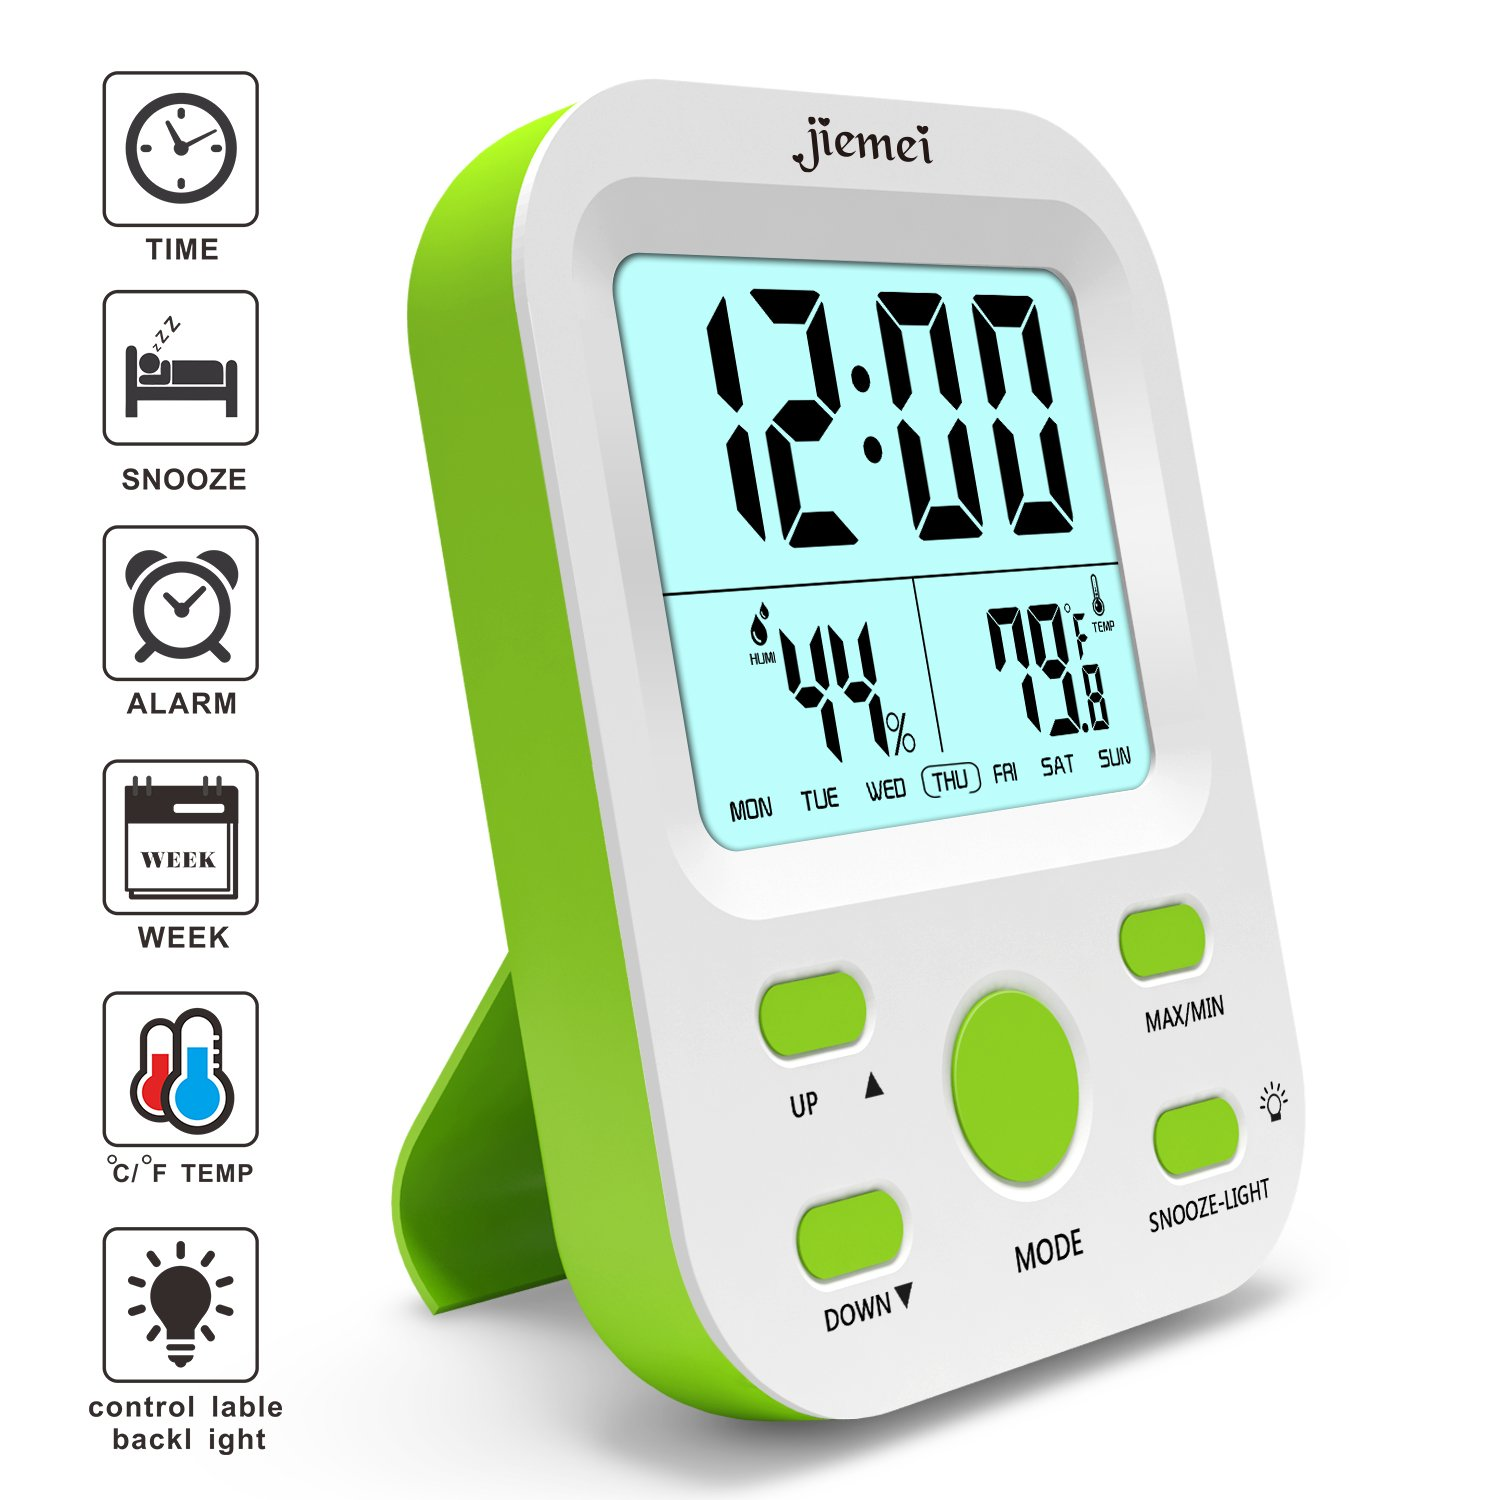 jiemei Alarm Clock Battery Operated, Digital Alarm Clocks for Kids and Adults with Snooze Function, LCD Large Display, Smart Backlight (Green)